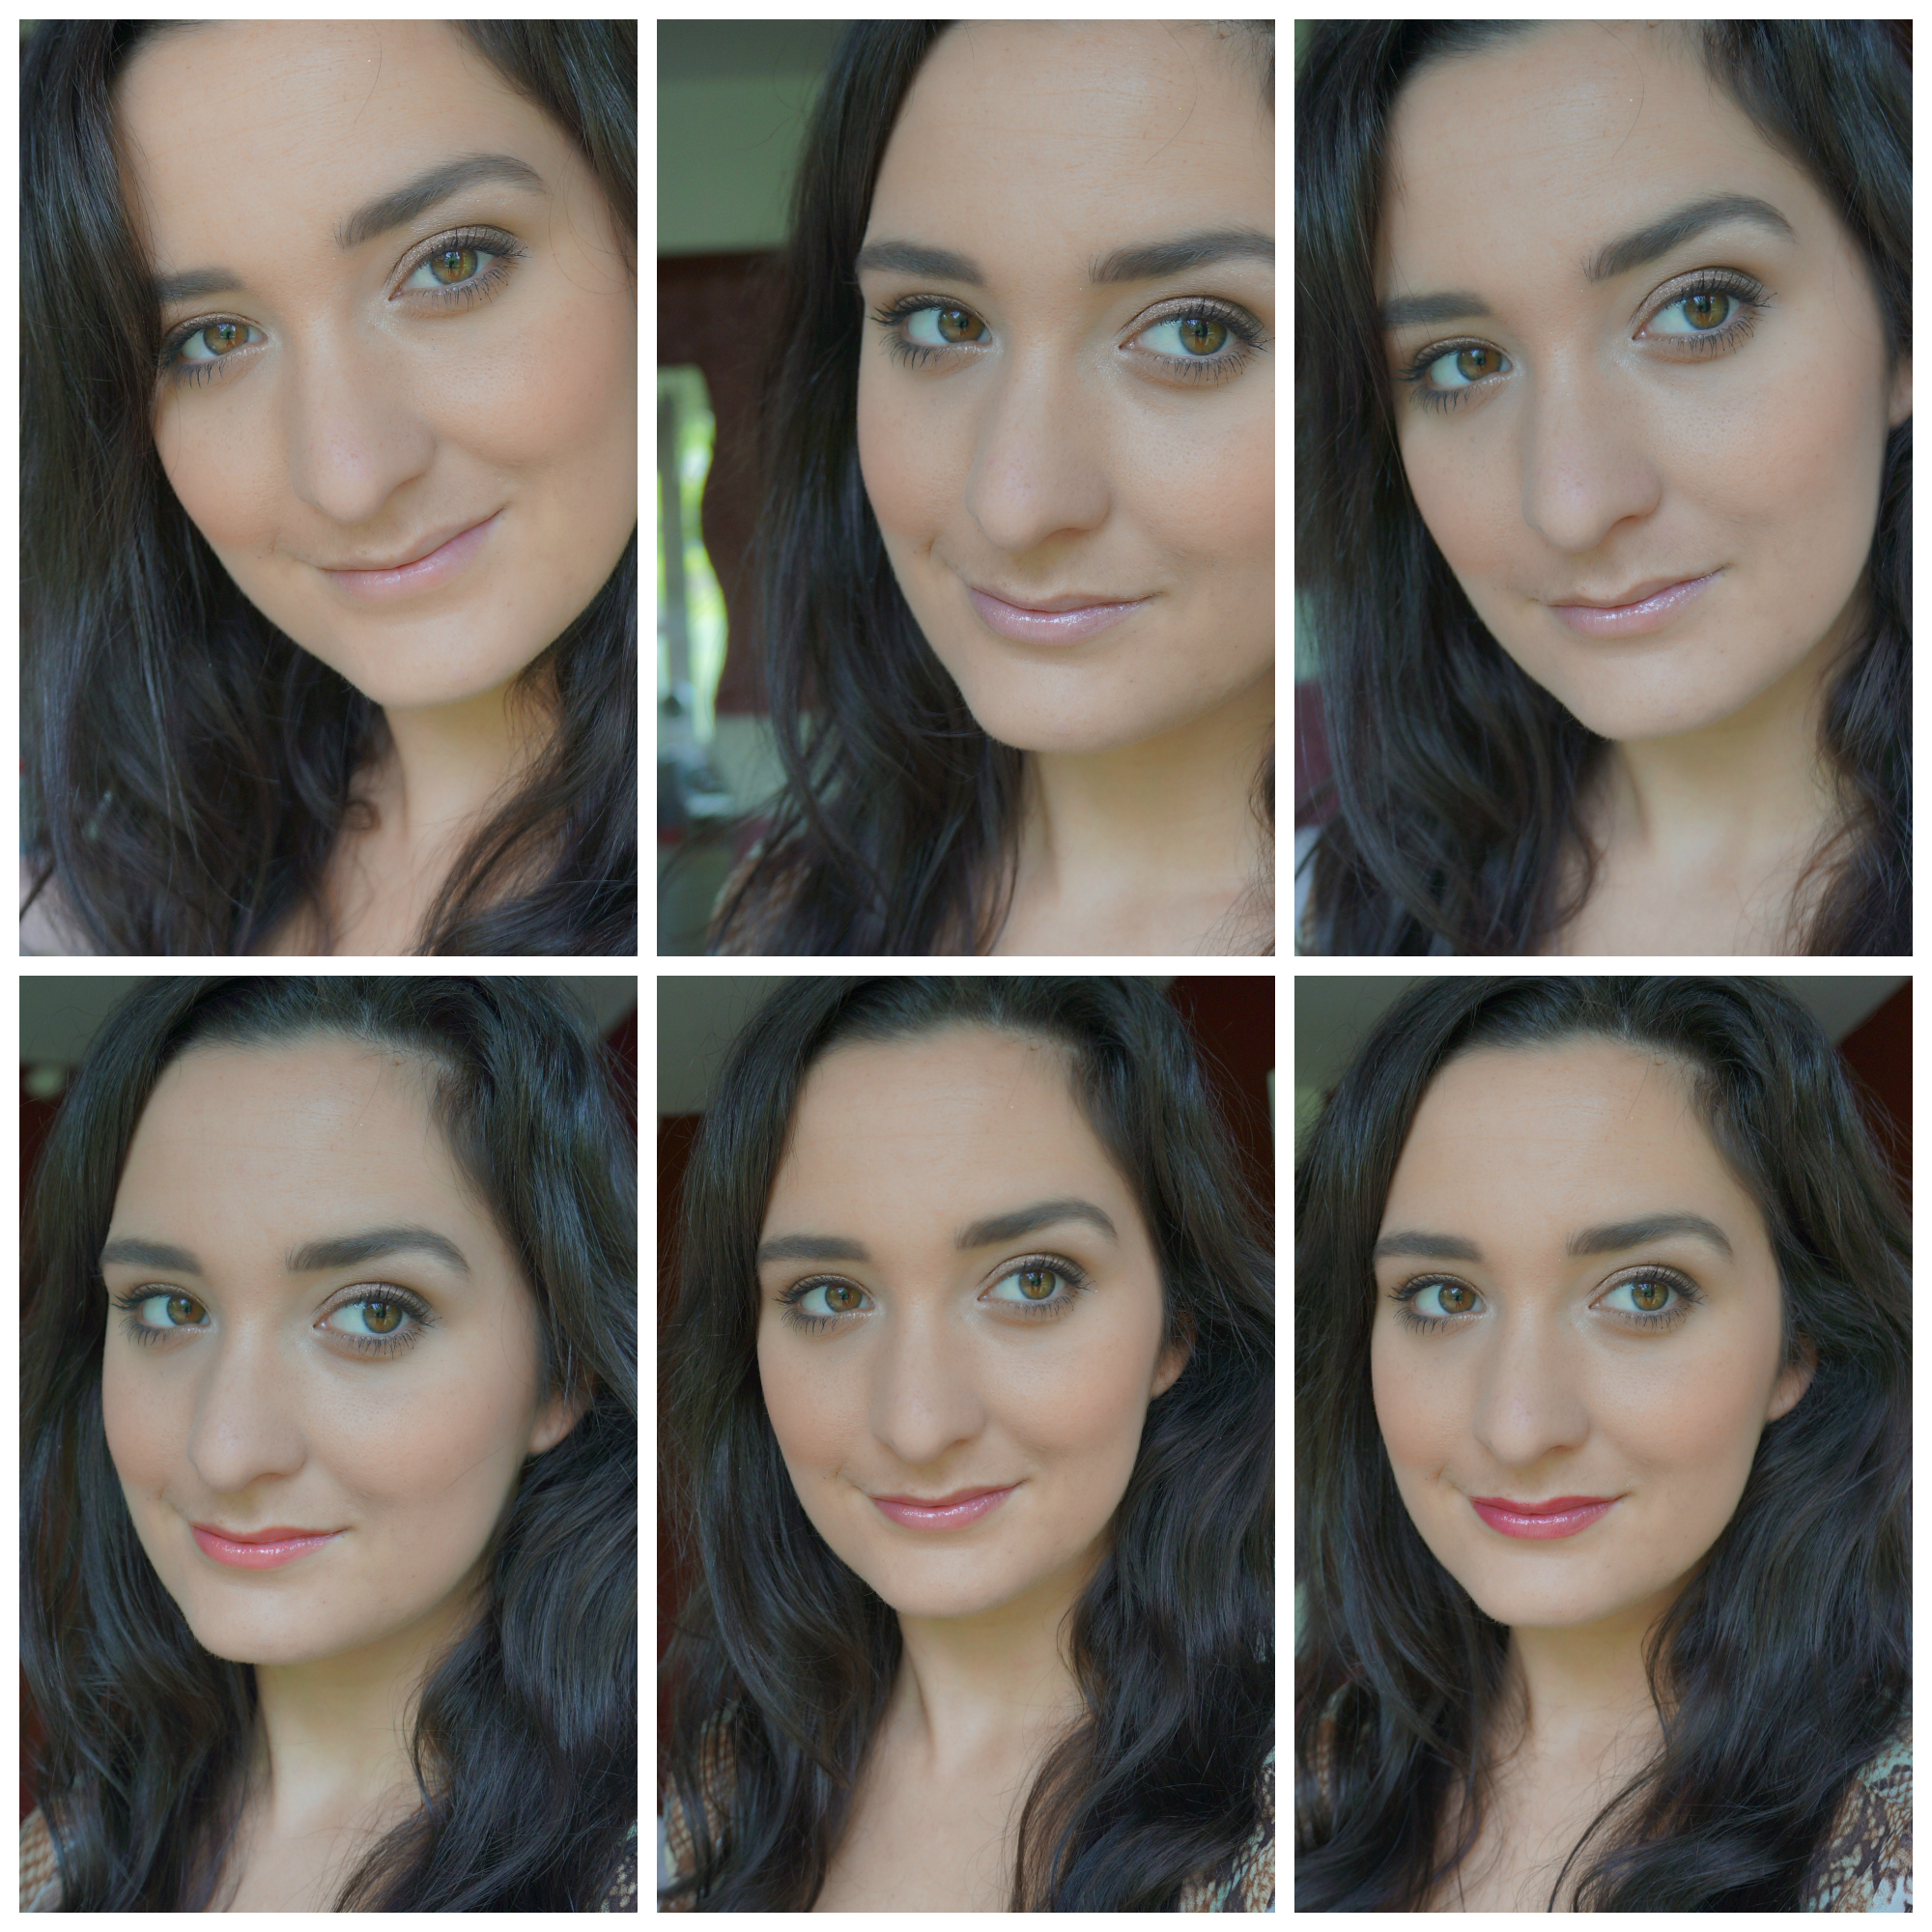 Maf-cator-lipgloss-swatches-review-look